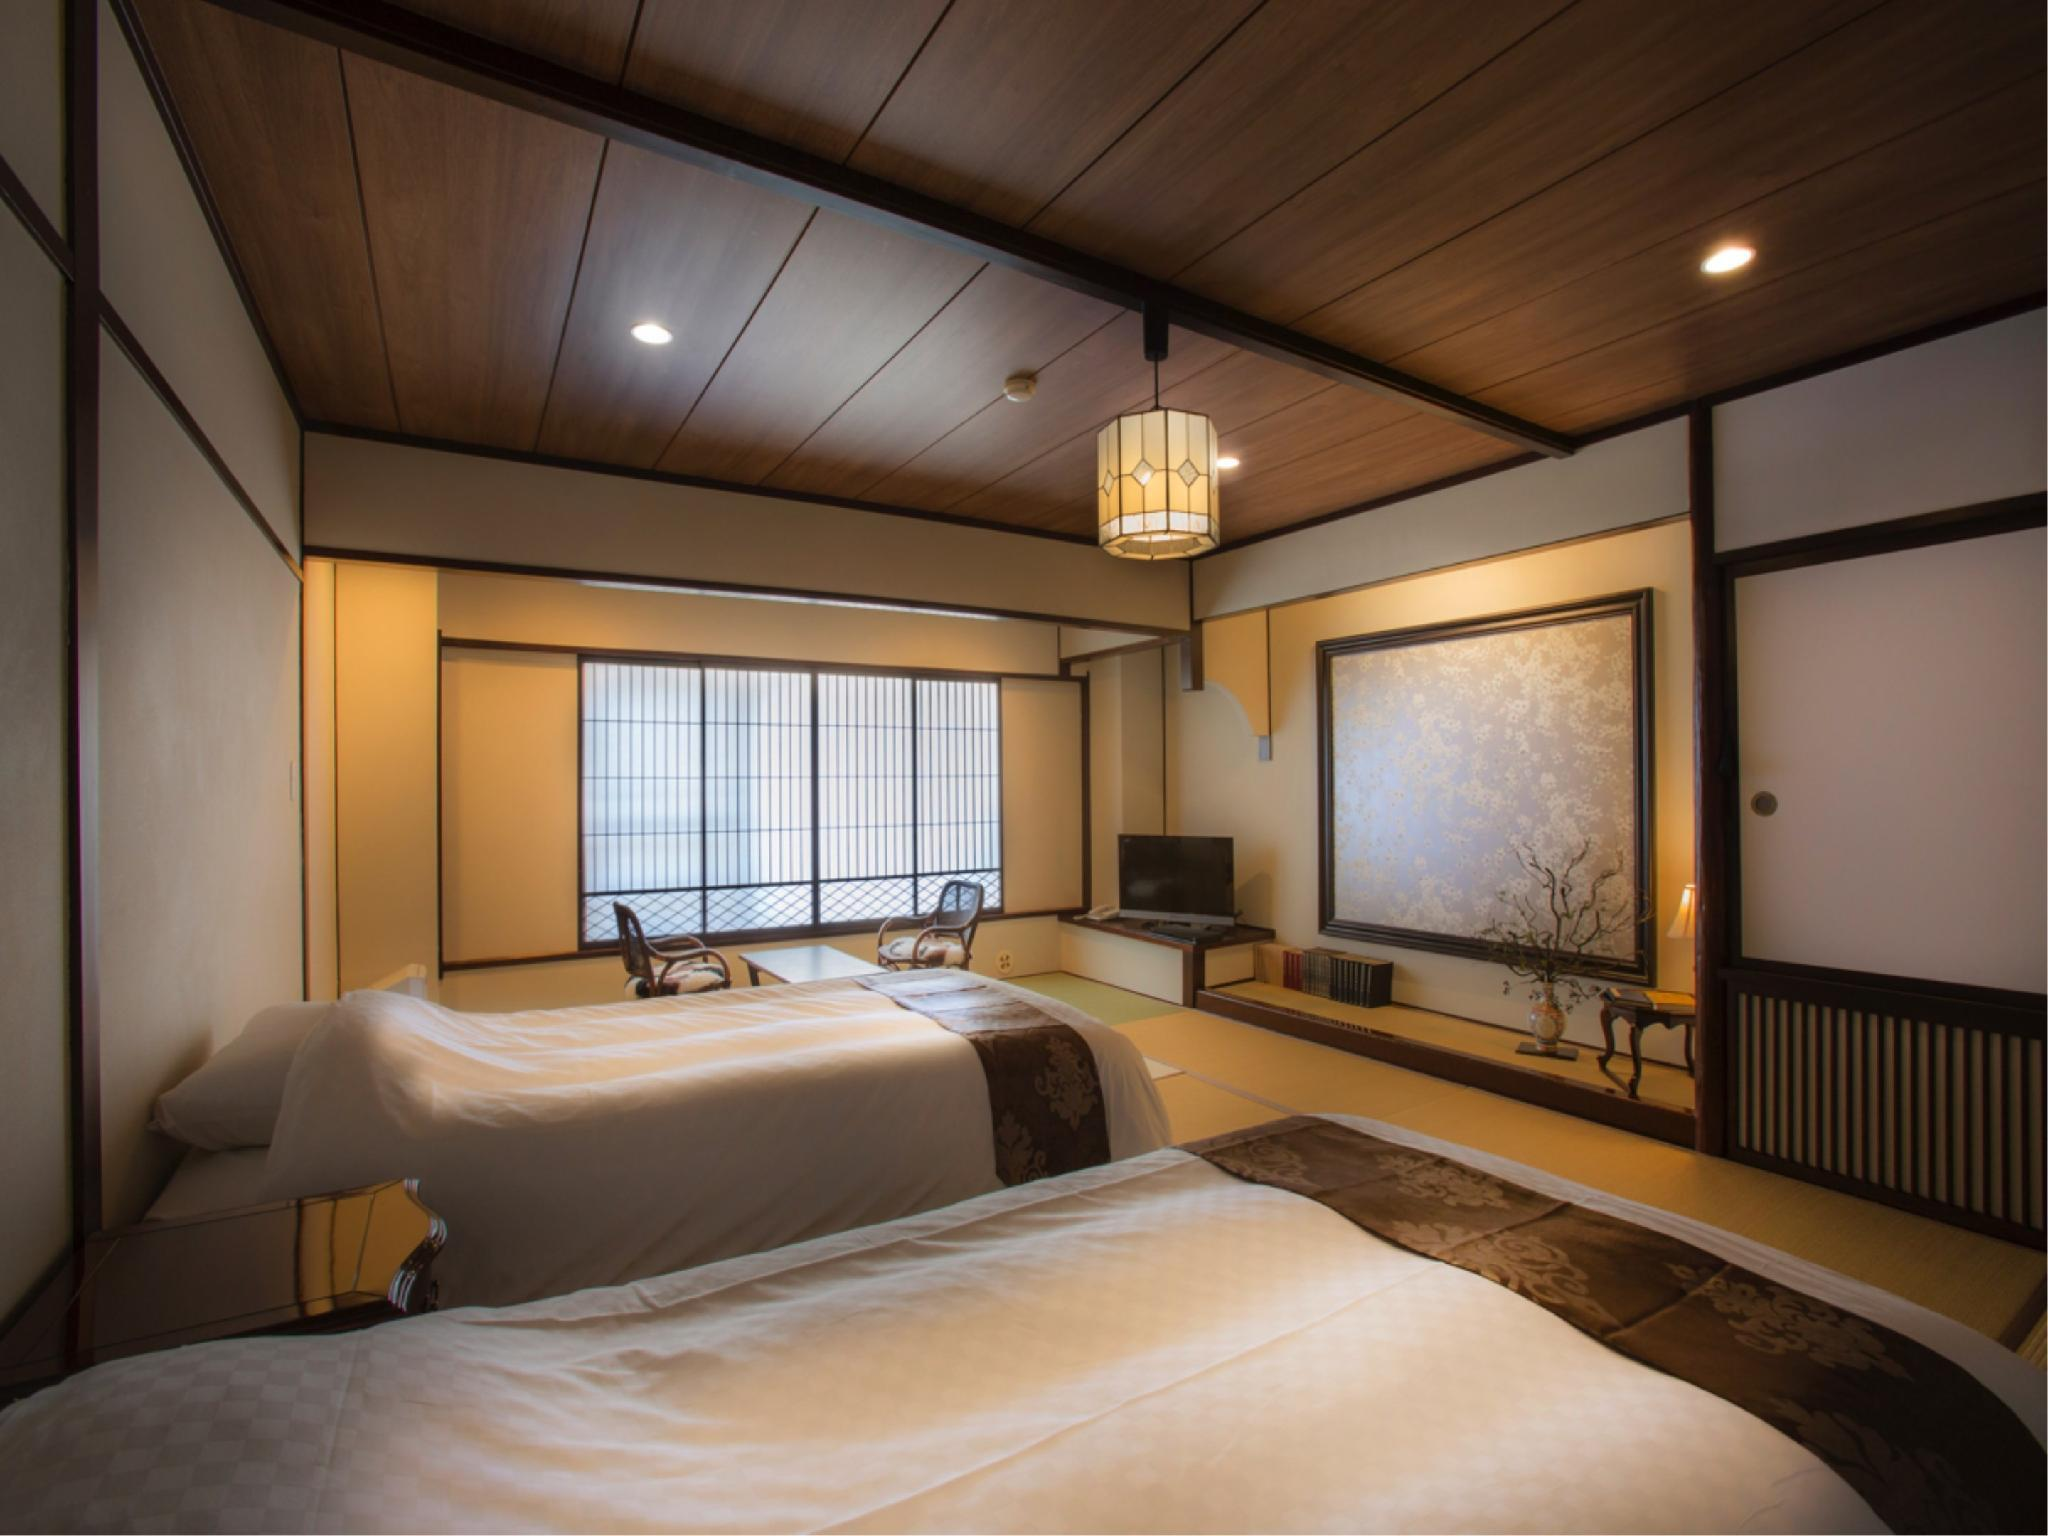 本館 深山亭 標準和式房+床 (Standard Japanese-style Room with Bed(s) (Miyamatei Wing, Main Building))